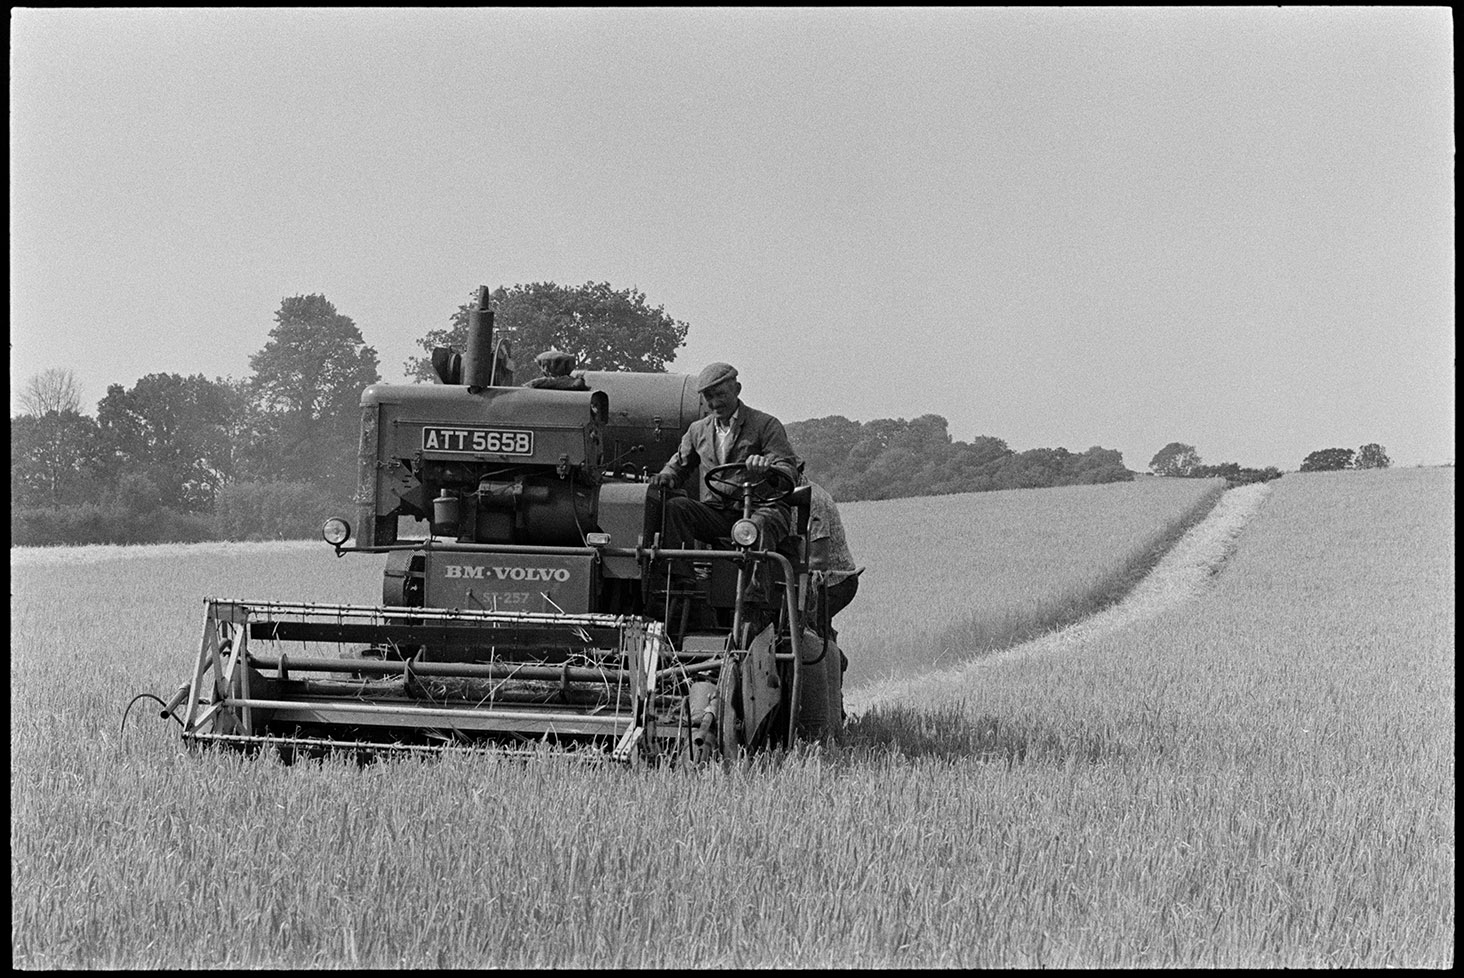 Iddesleigh, Parsonage, Aug 1976? Documentary photograph by James Ravilious for the Beaford Archive © Beaford Arts